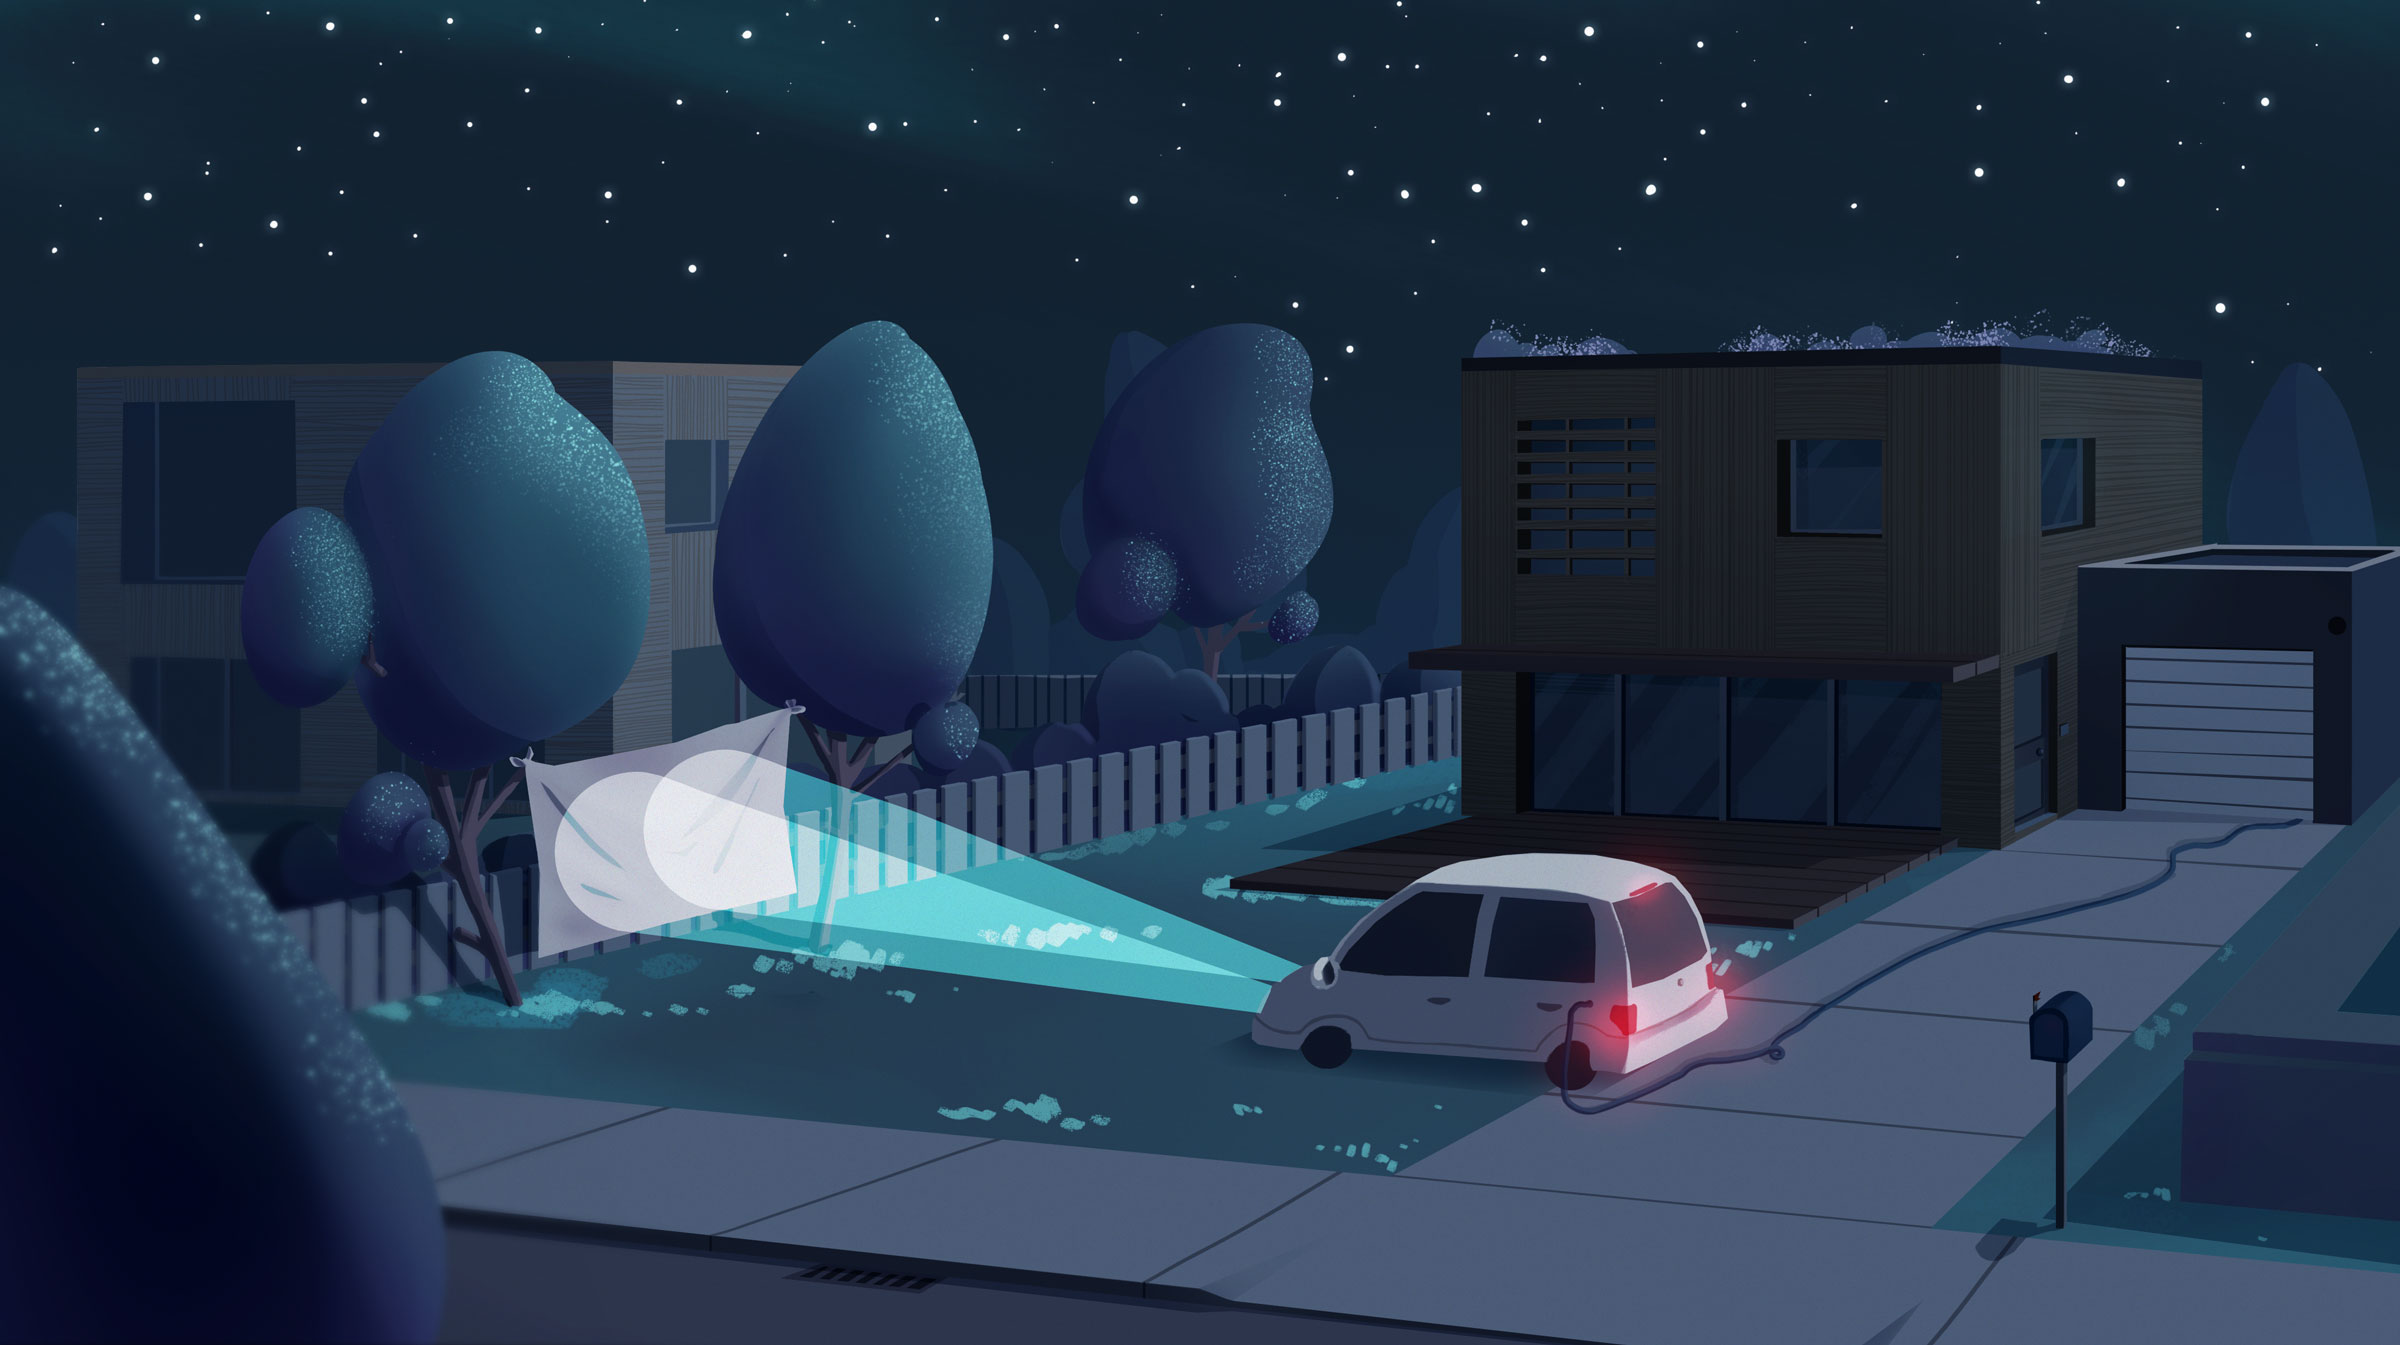 Projection Nocture - Concept, illustration - Romain Laforet